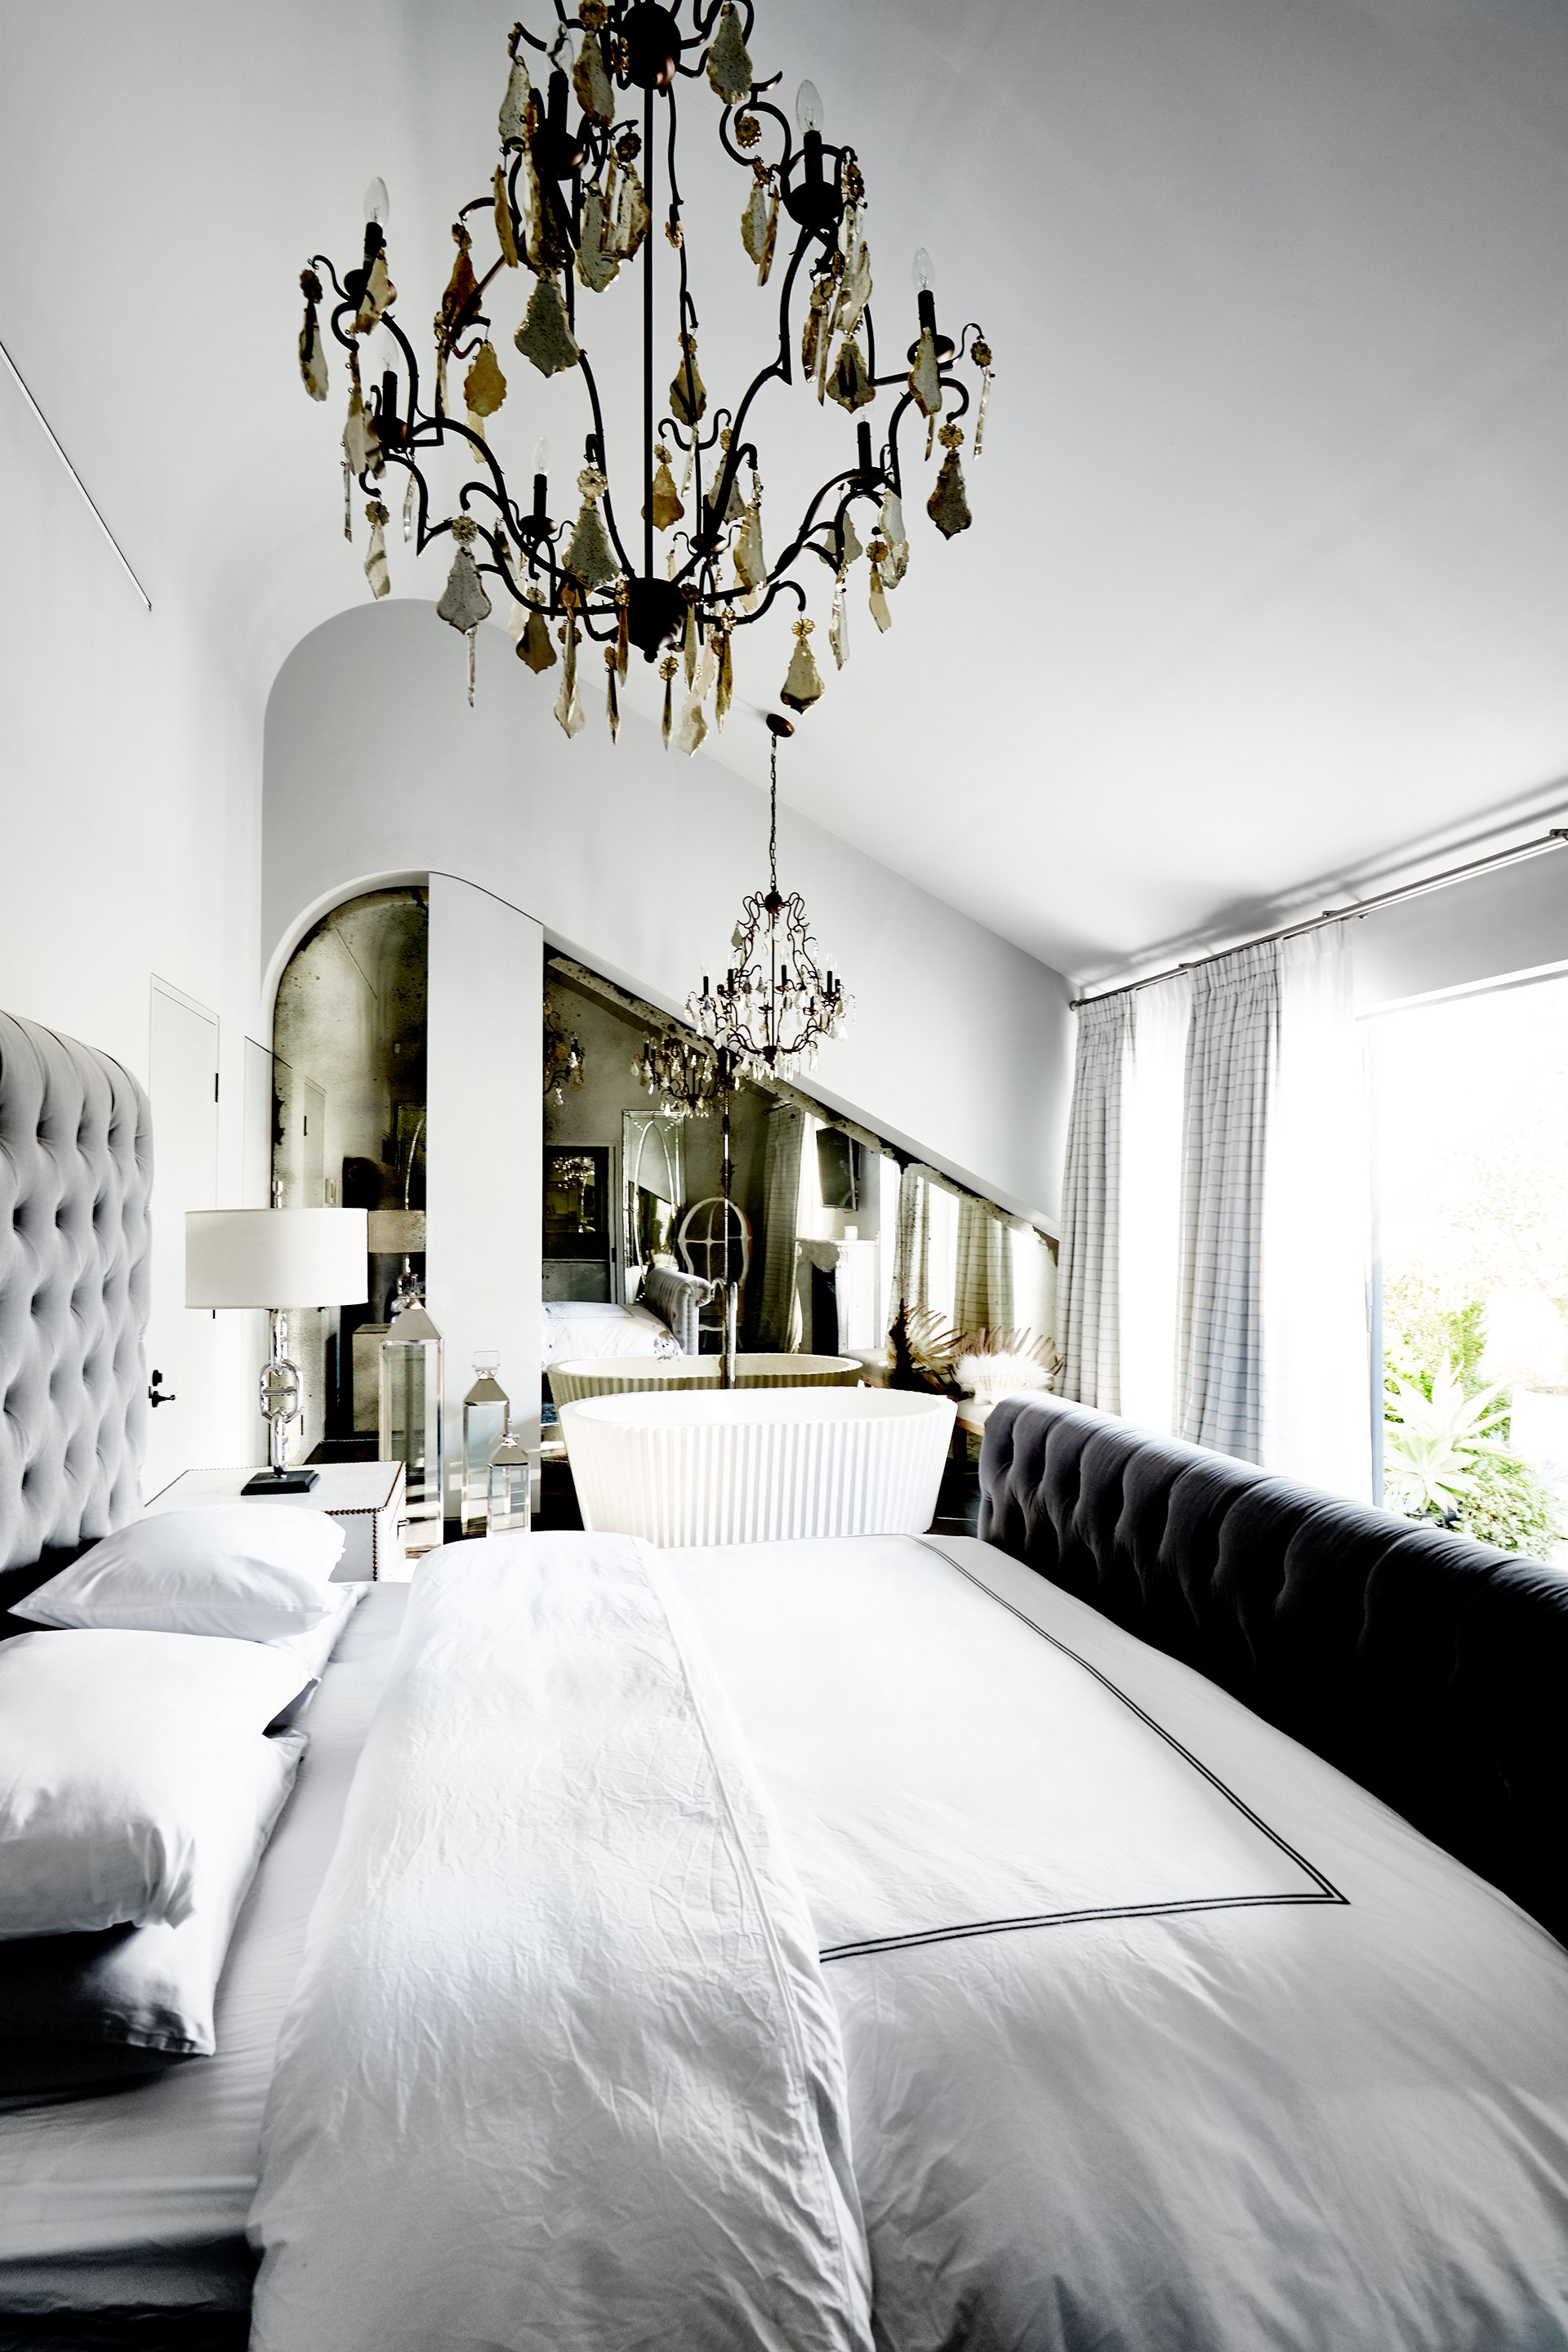 In the master bedroom of this [grand Potts Point terrace](http://www.homestolove.com.au/saraville-the-grandest-terrace-of-them-all-4215), gilded elements such as the mirror and chandeliers are purposefully aged for a rich yet restful space. *Photo: Kristina Soljo*